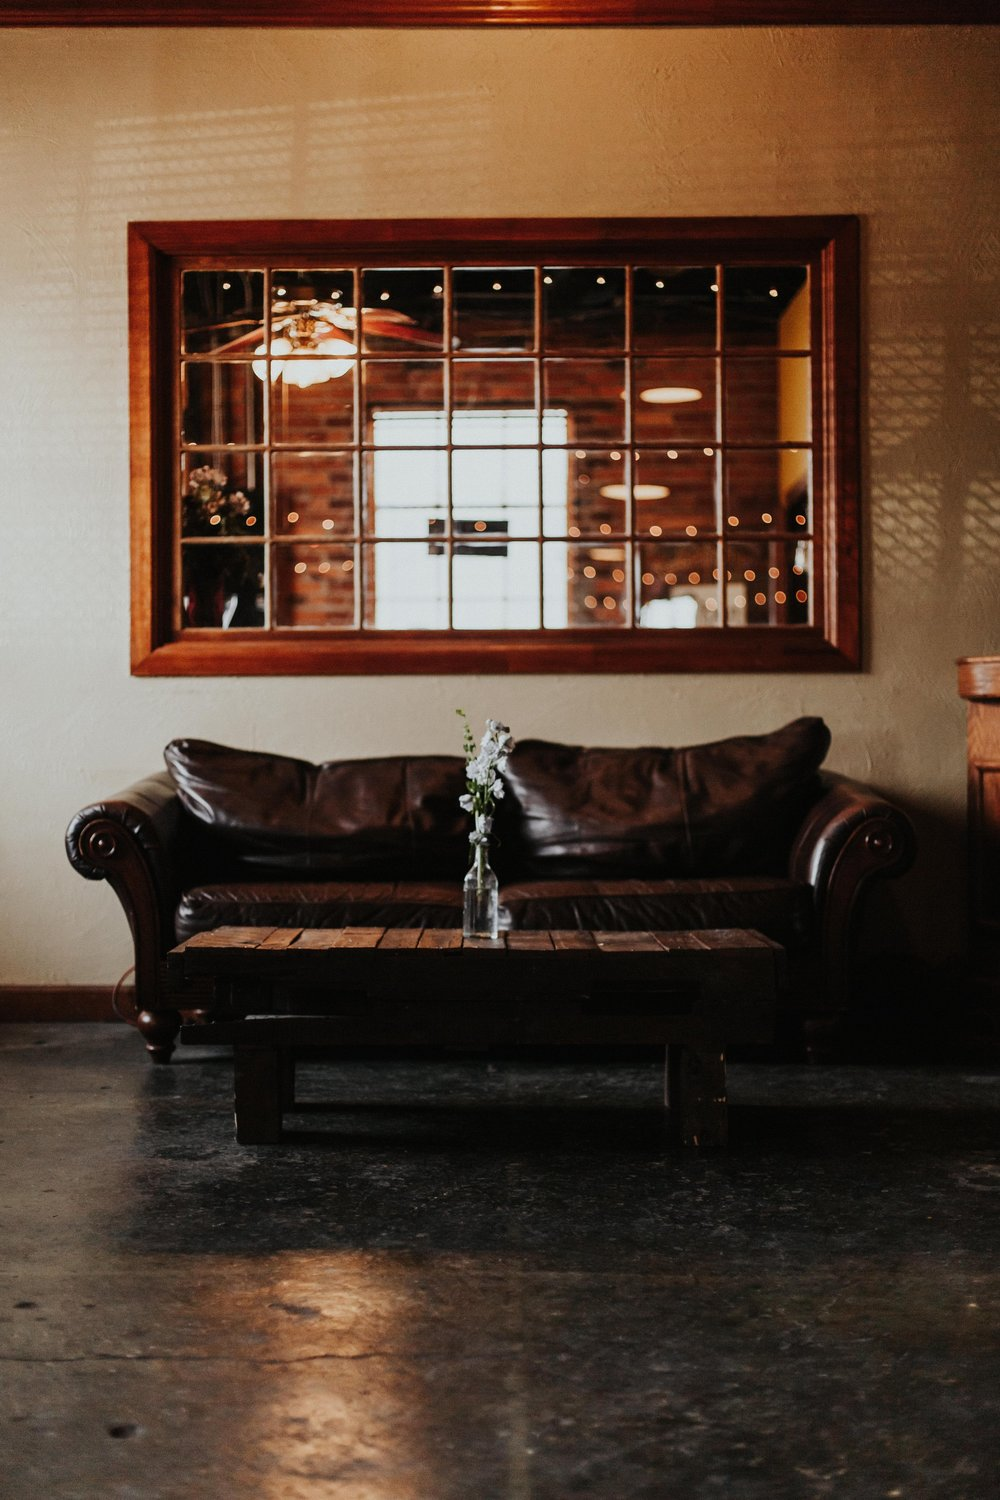 Furniture - Whether your event is an intimate wedding or a business meeting, all the furniture you will need is right here at the Foundry! We want to make your event planning effortless, providing anything from round tables, coffee tables, rectangular tables, to chairs and couches.